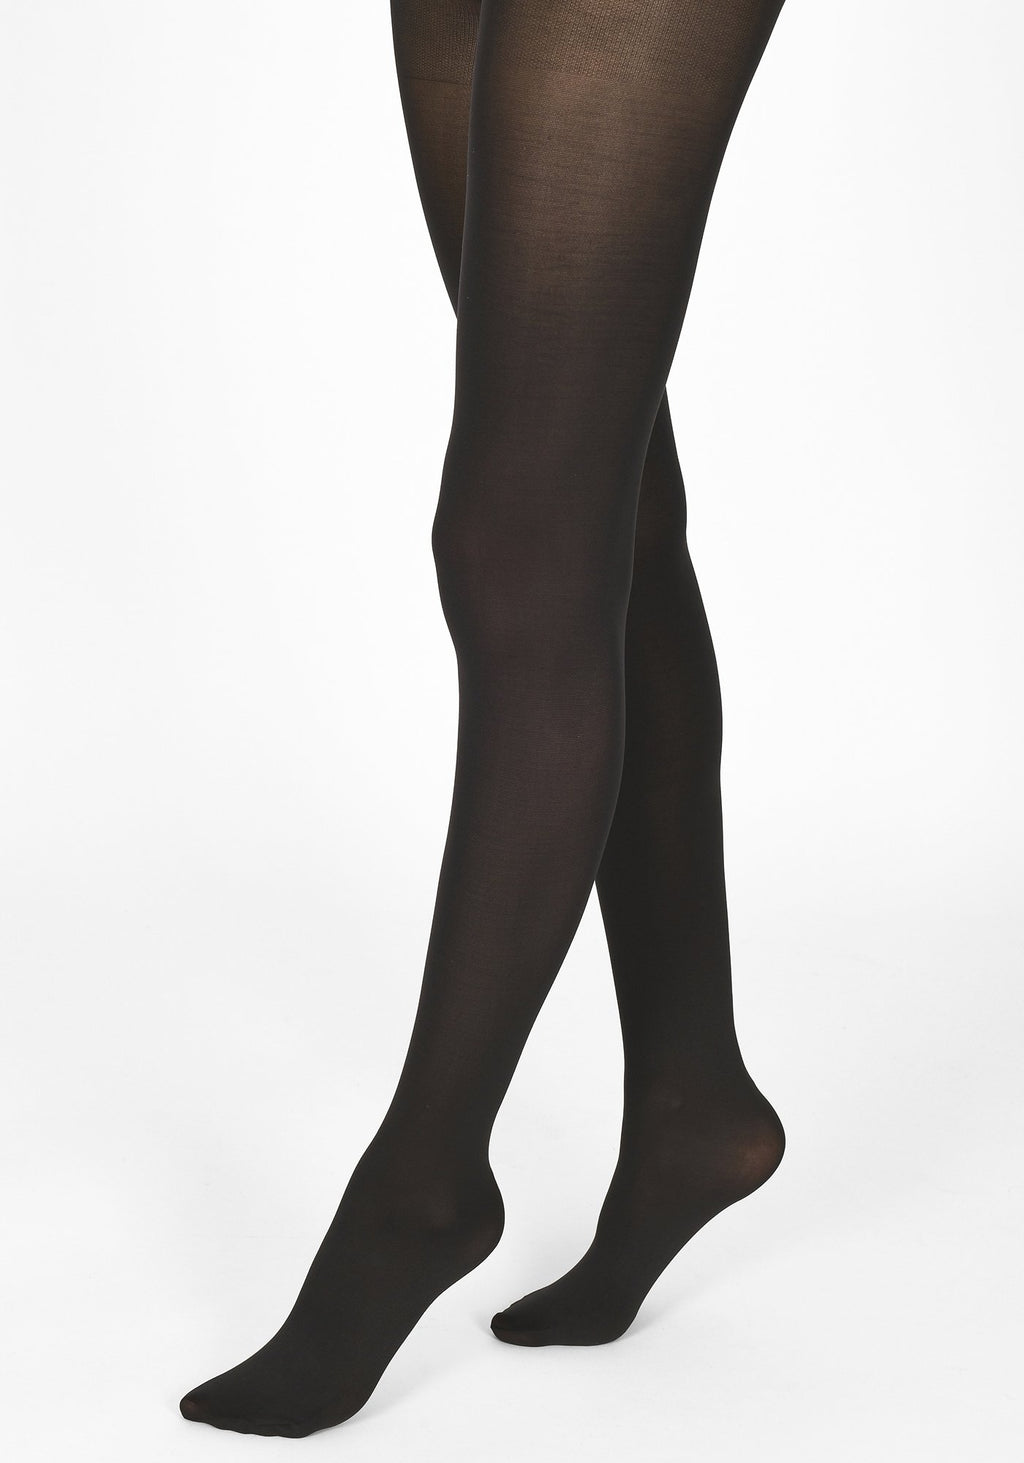 black tights 60 denier 1